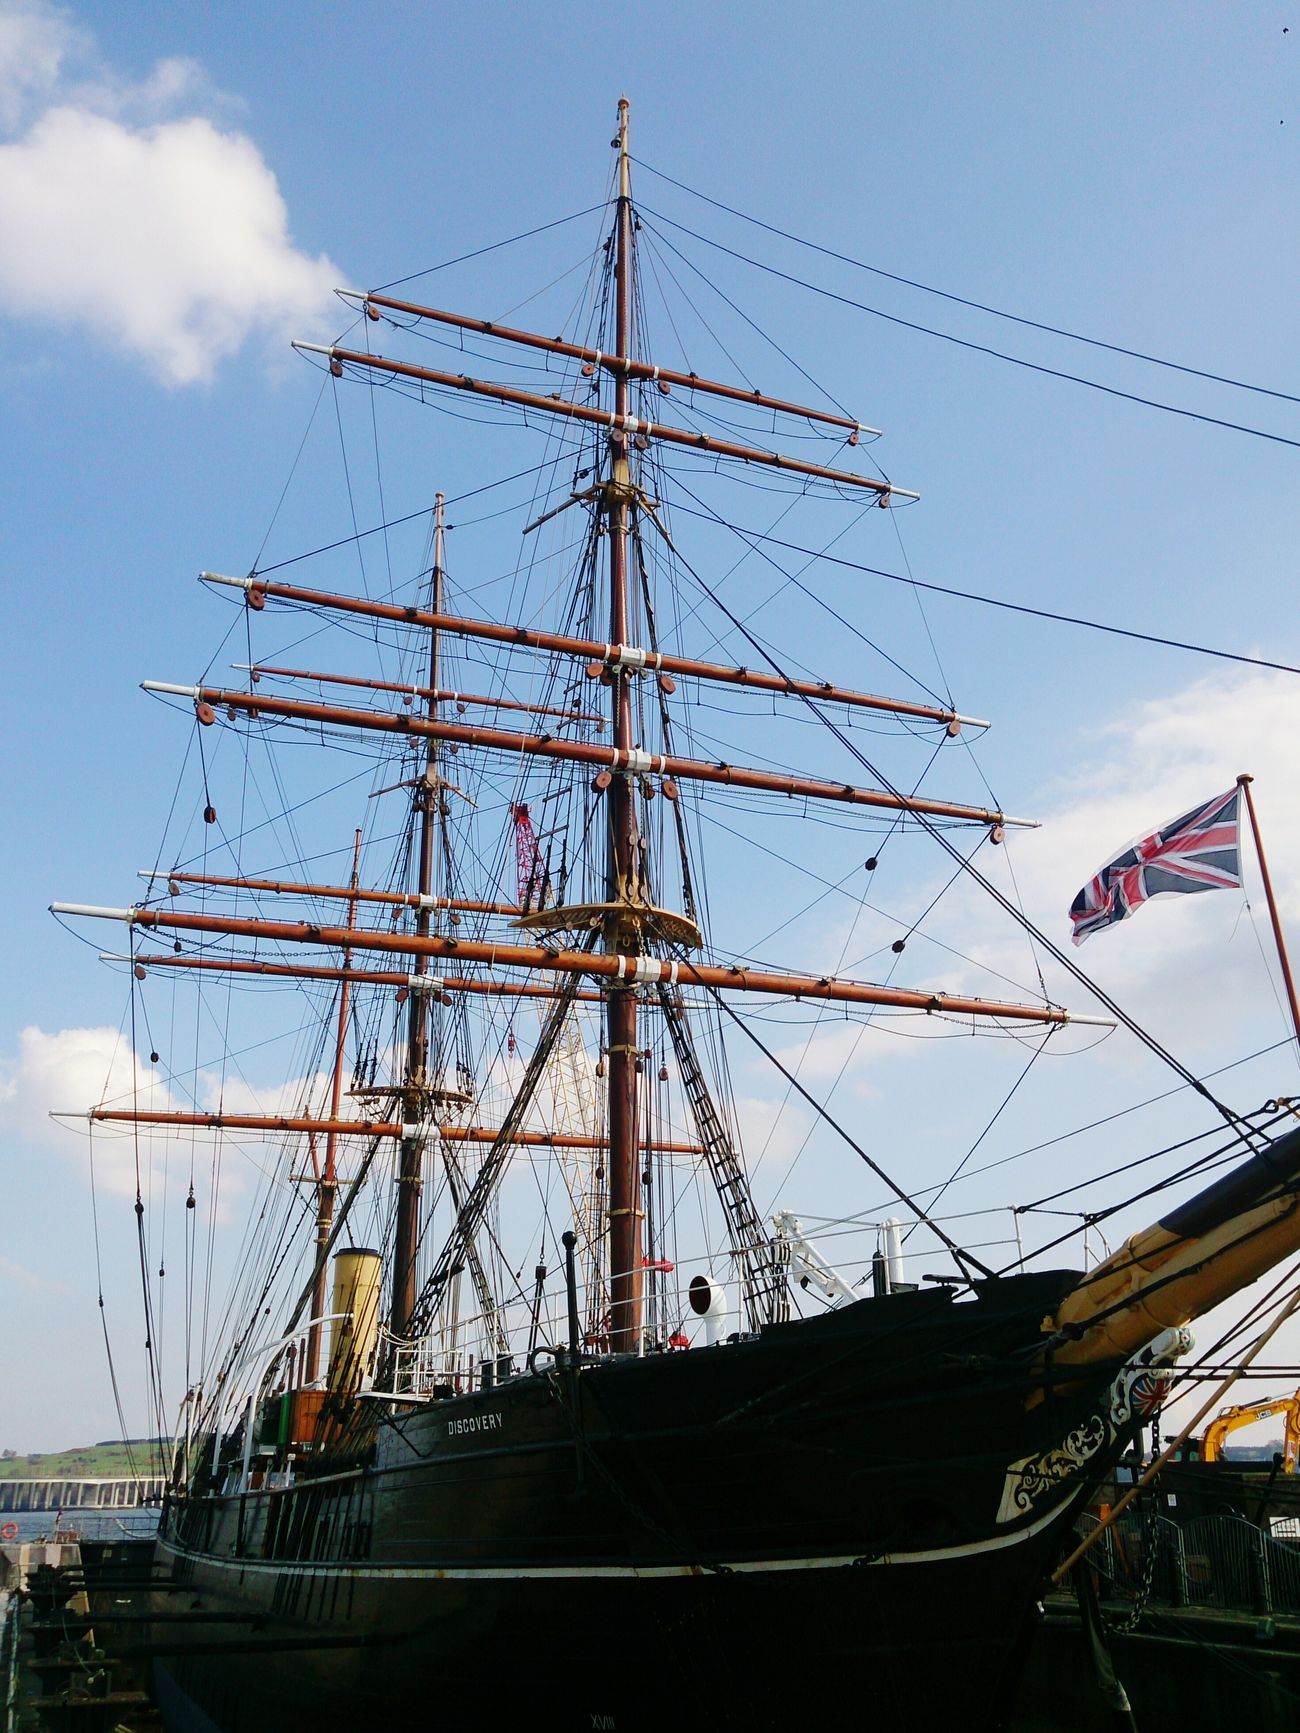 RRS Discovery, Dundee - 24.04.2015 Rrs Discovery Ship Dundee 2015